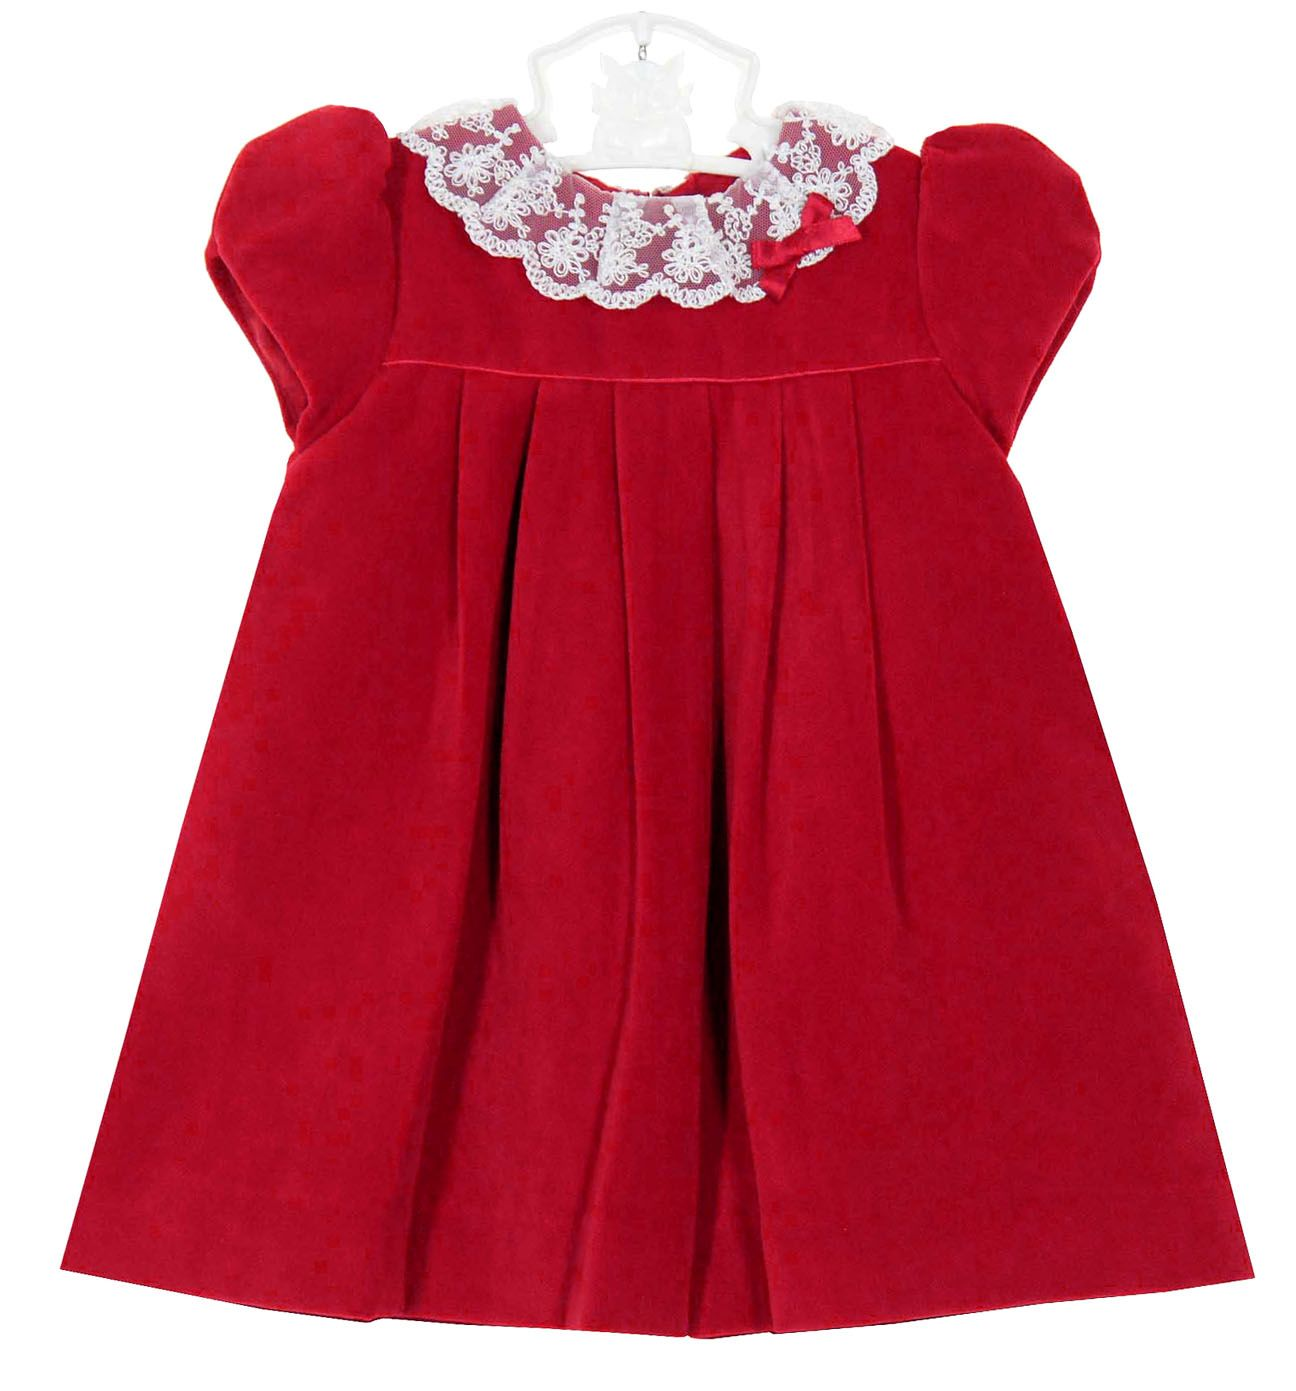 41707ba0cff NEW Sarah Louise Red Velvet Dress with Delicate Lace Collar  105.00 ...